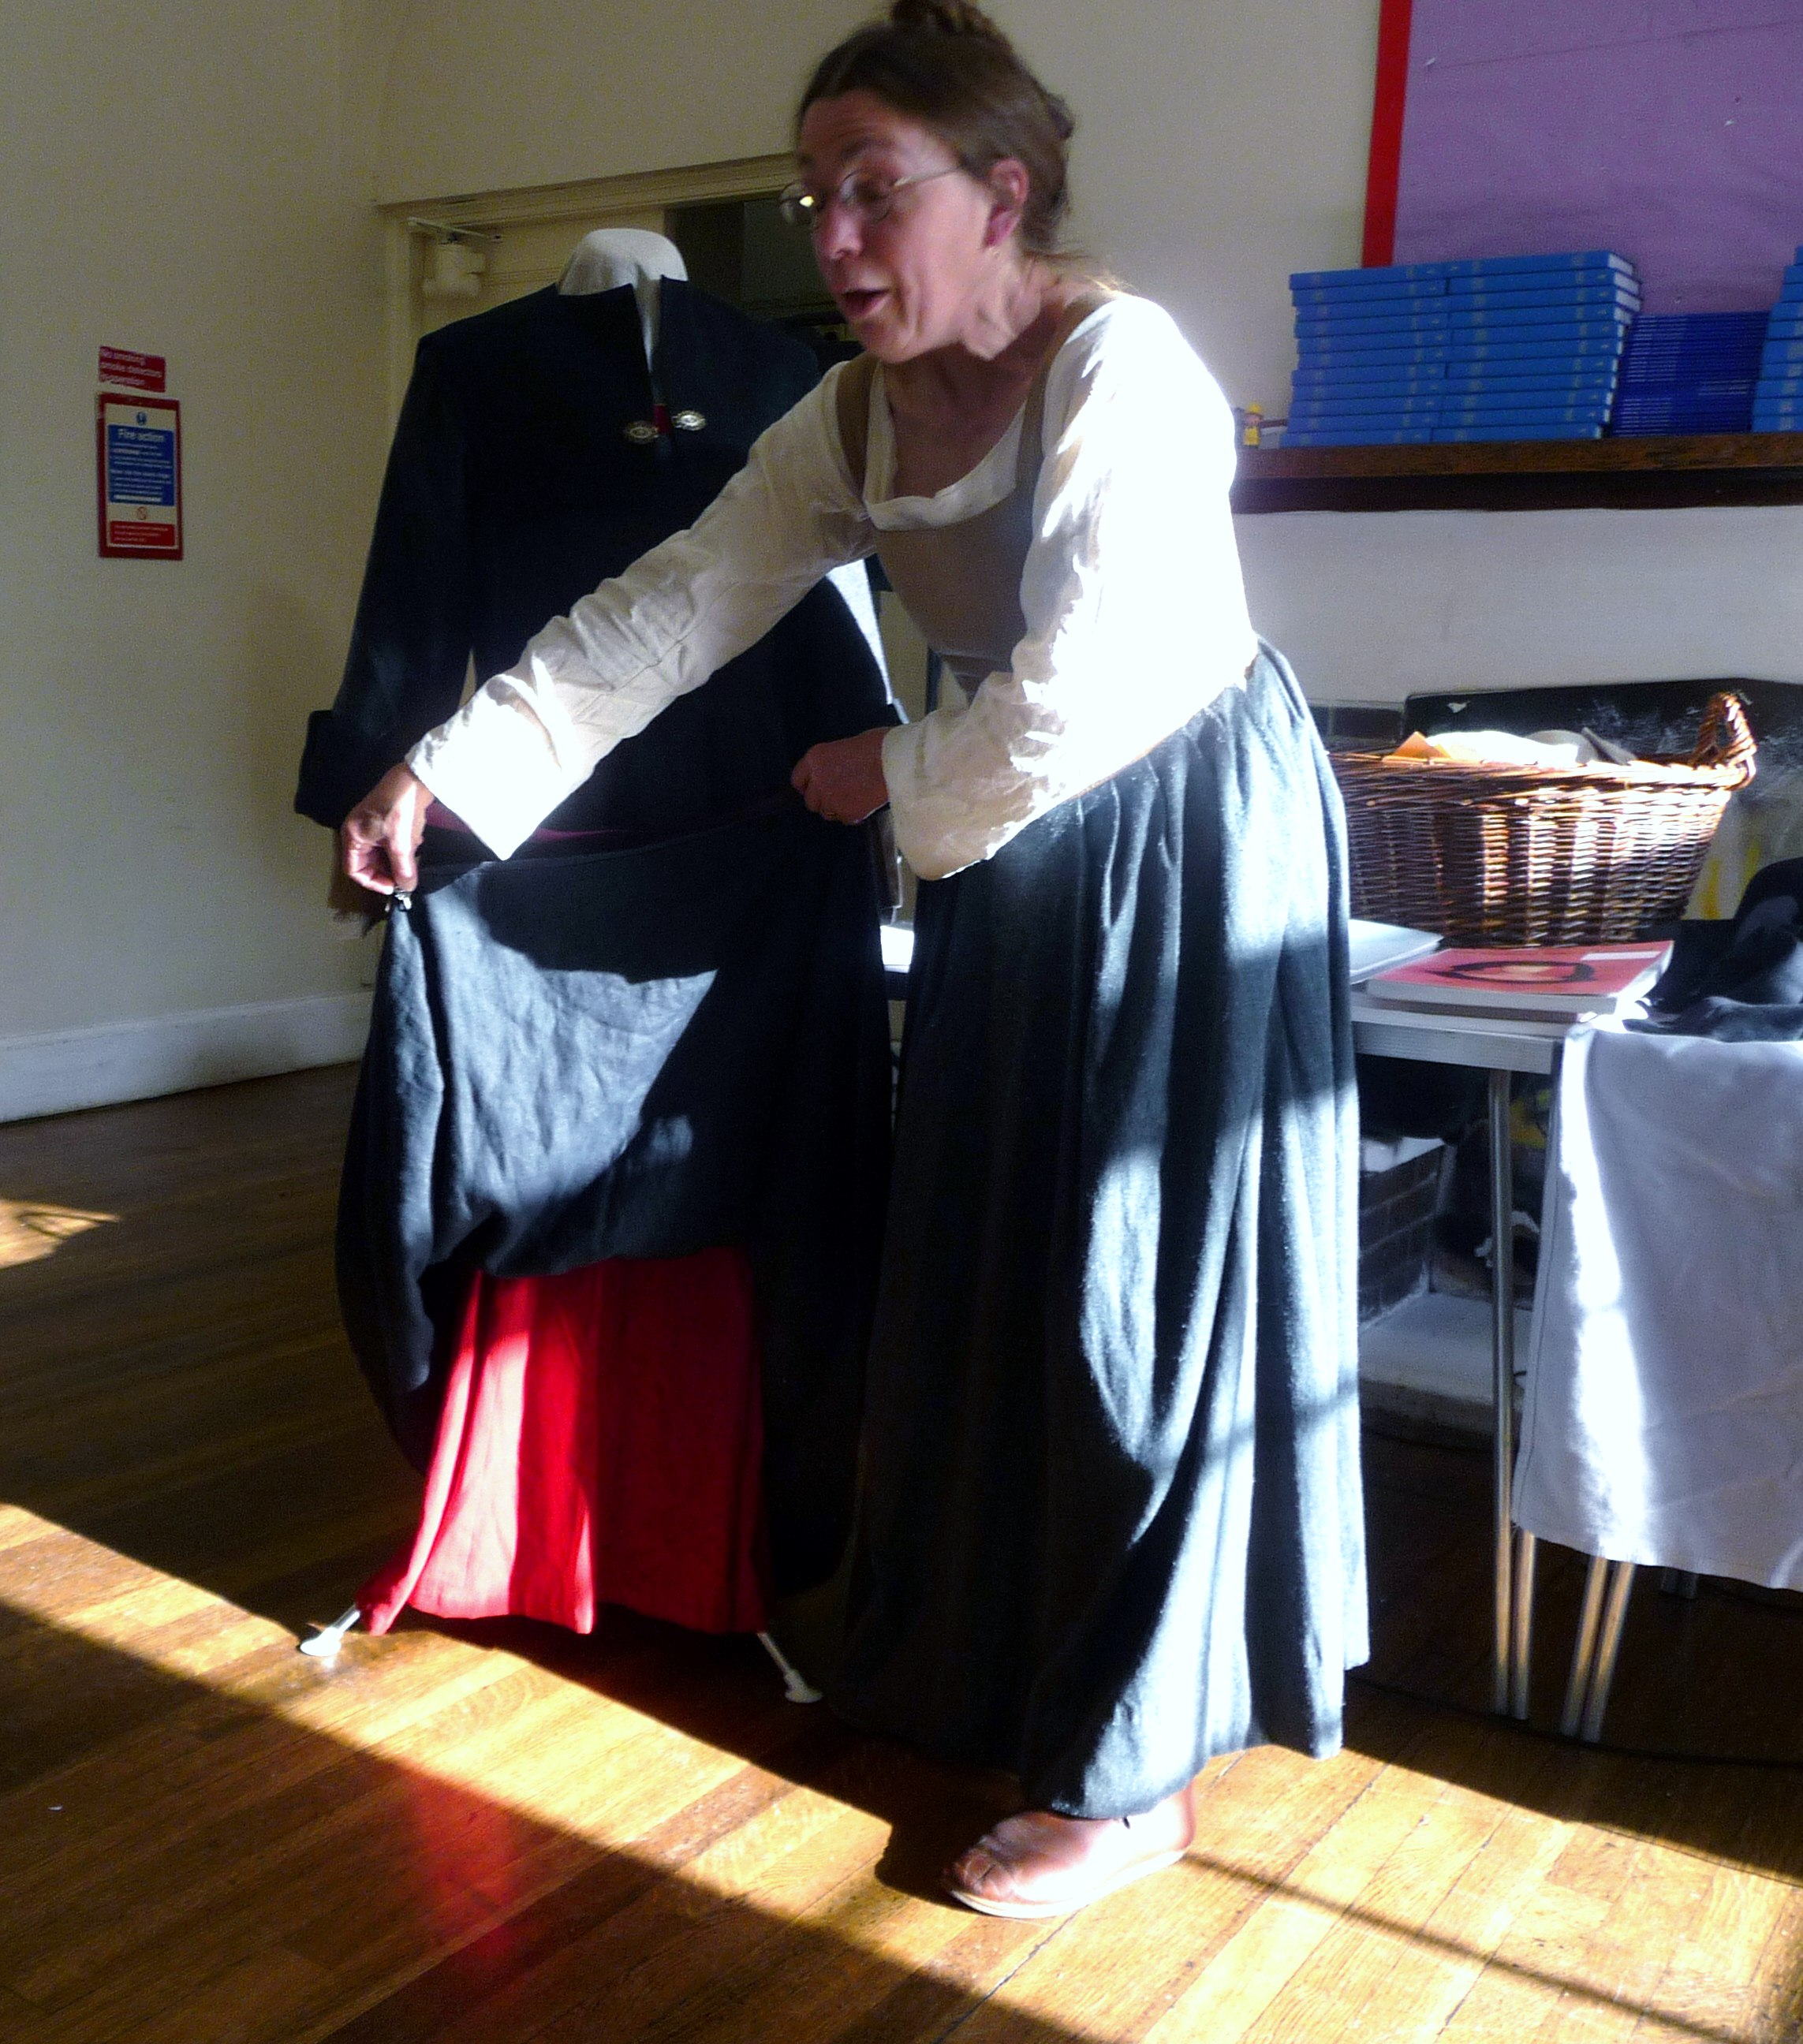 Sarah Thursfield is demonstrating a skirt lifter which was fastened to the gown to show the red petticoat